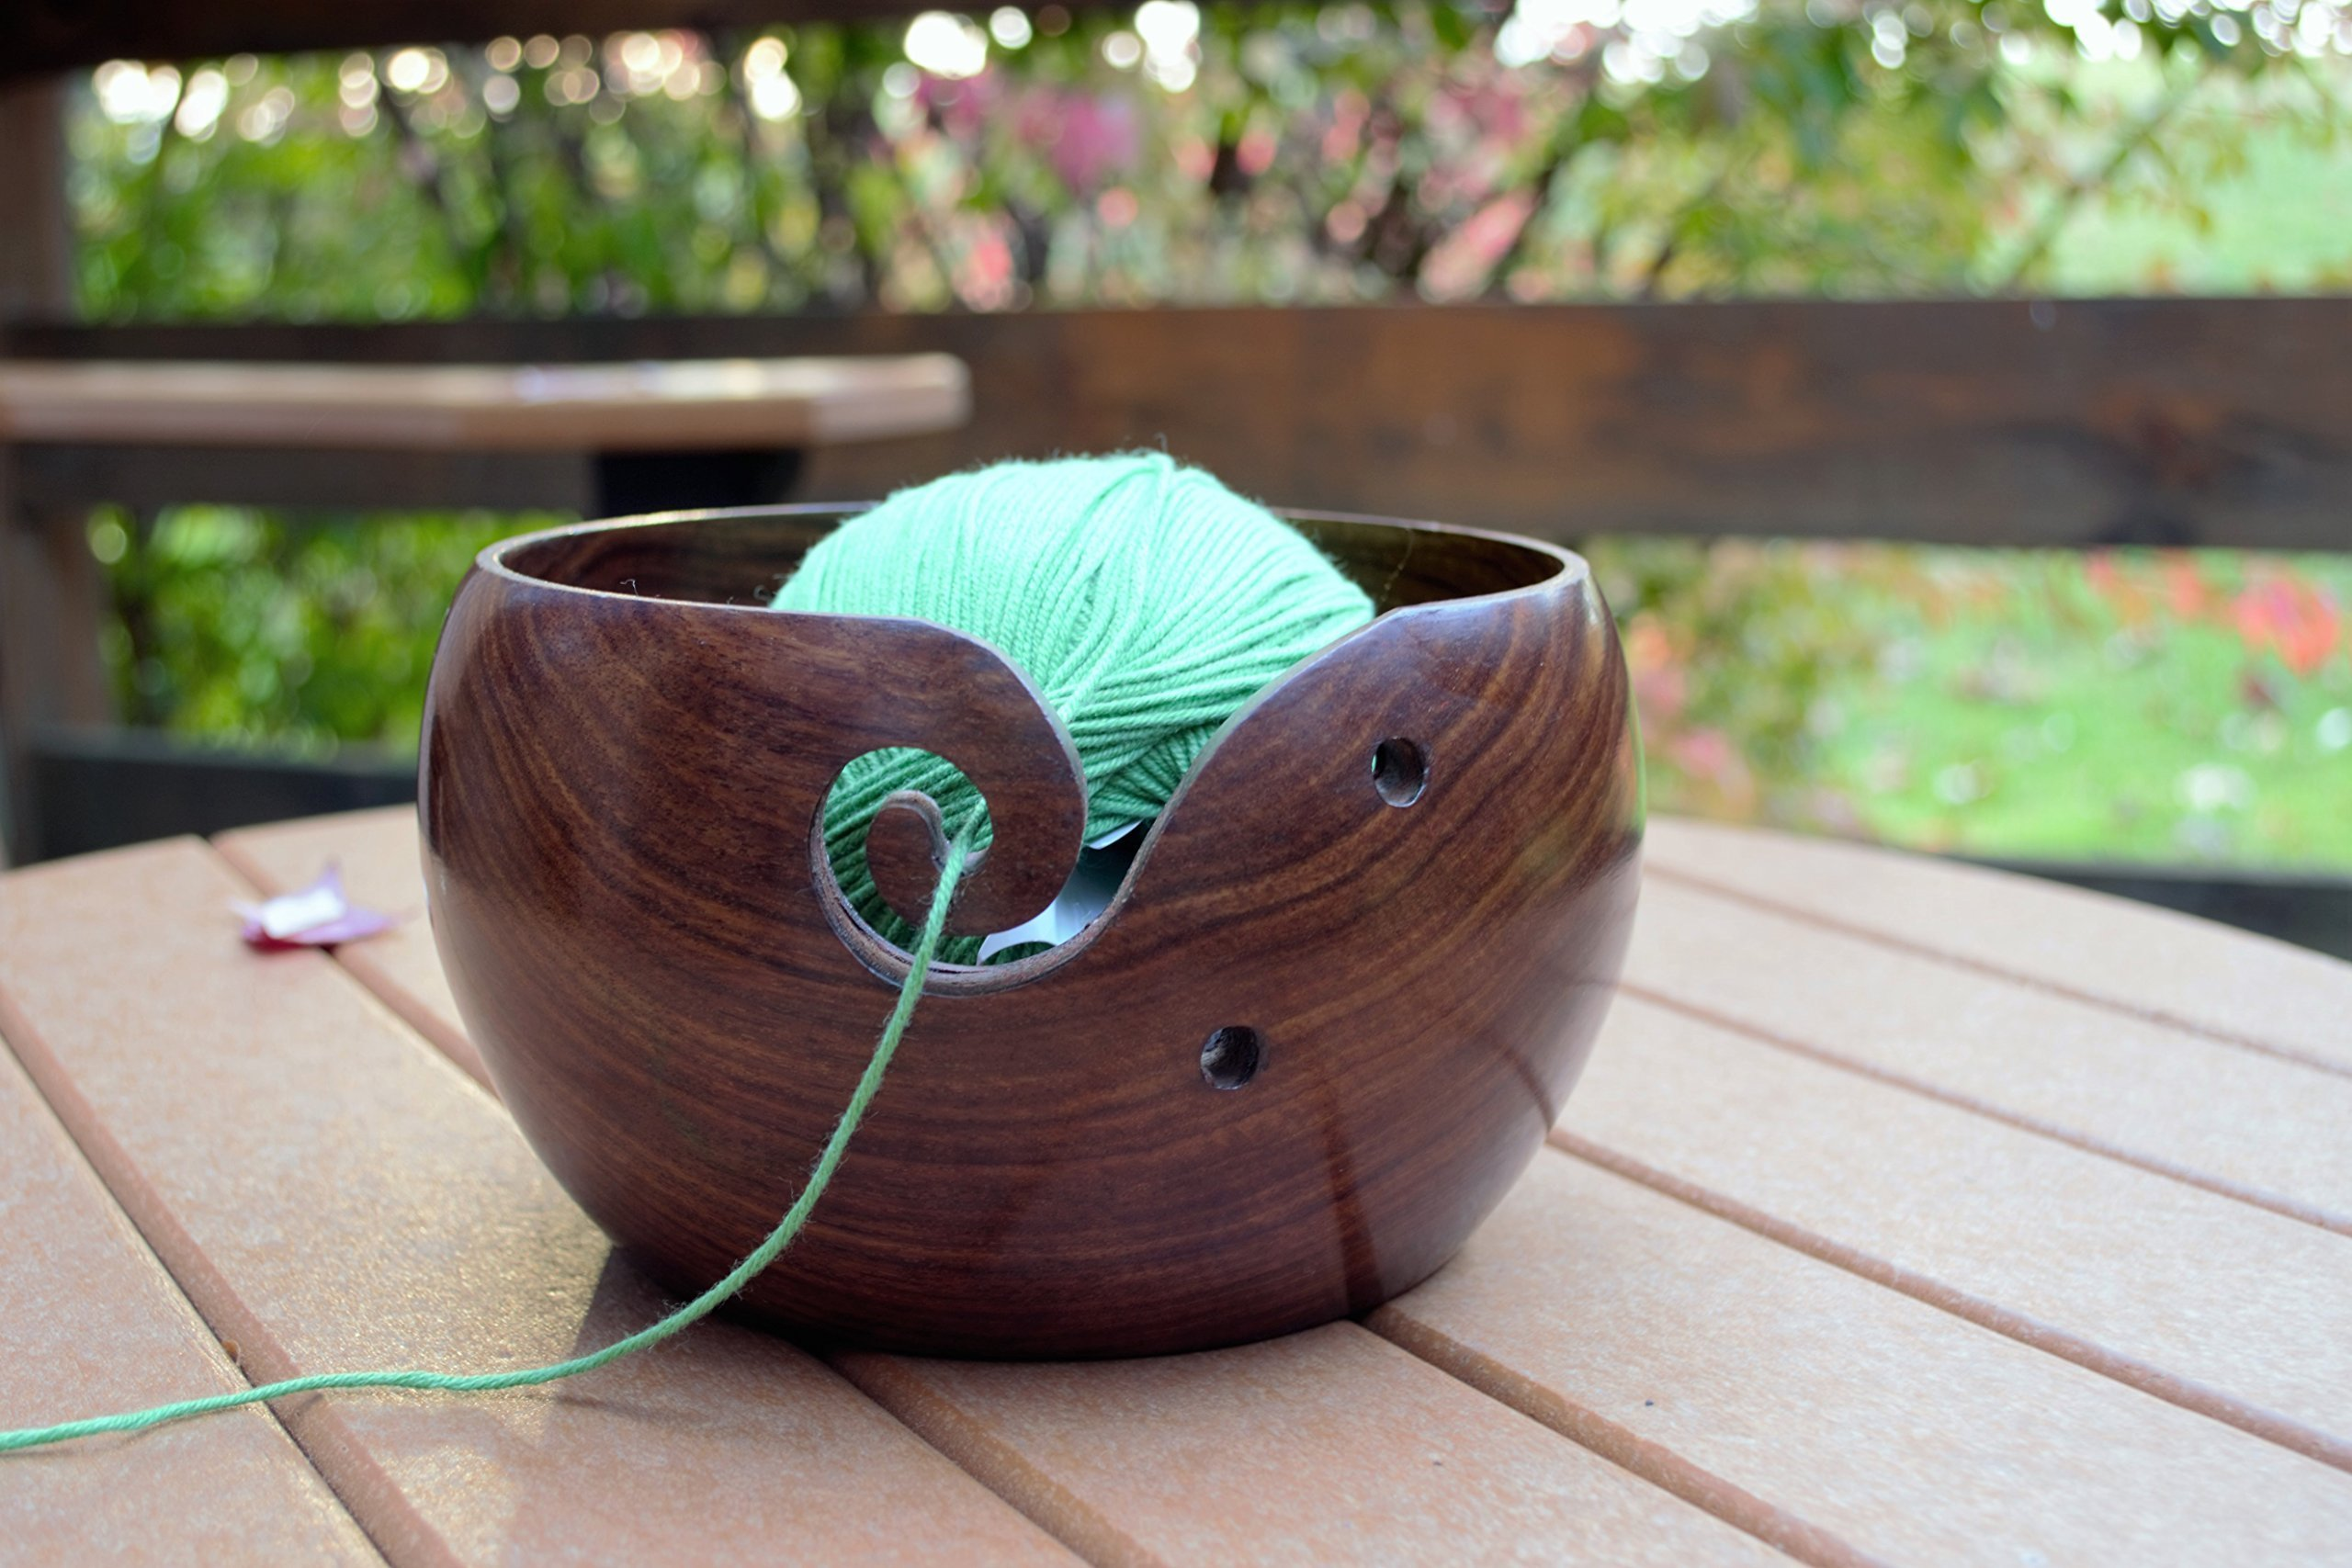 Hagestad Yarn Bowl -7''x4'' Rosewood -Wooden -Large with Free Travel Pouch & Crochet Hooks. Handmade from Sheesham - Heavy & Sturdy to Prevent Slipping. Perfect Yarn Holder for Knitting & Crocheting by Hagestad (Image #5)